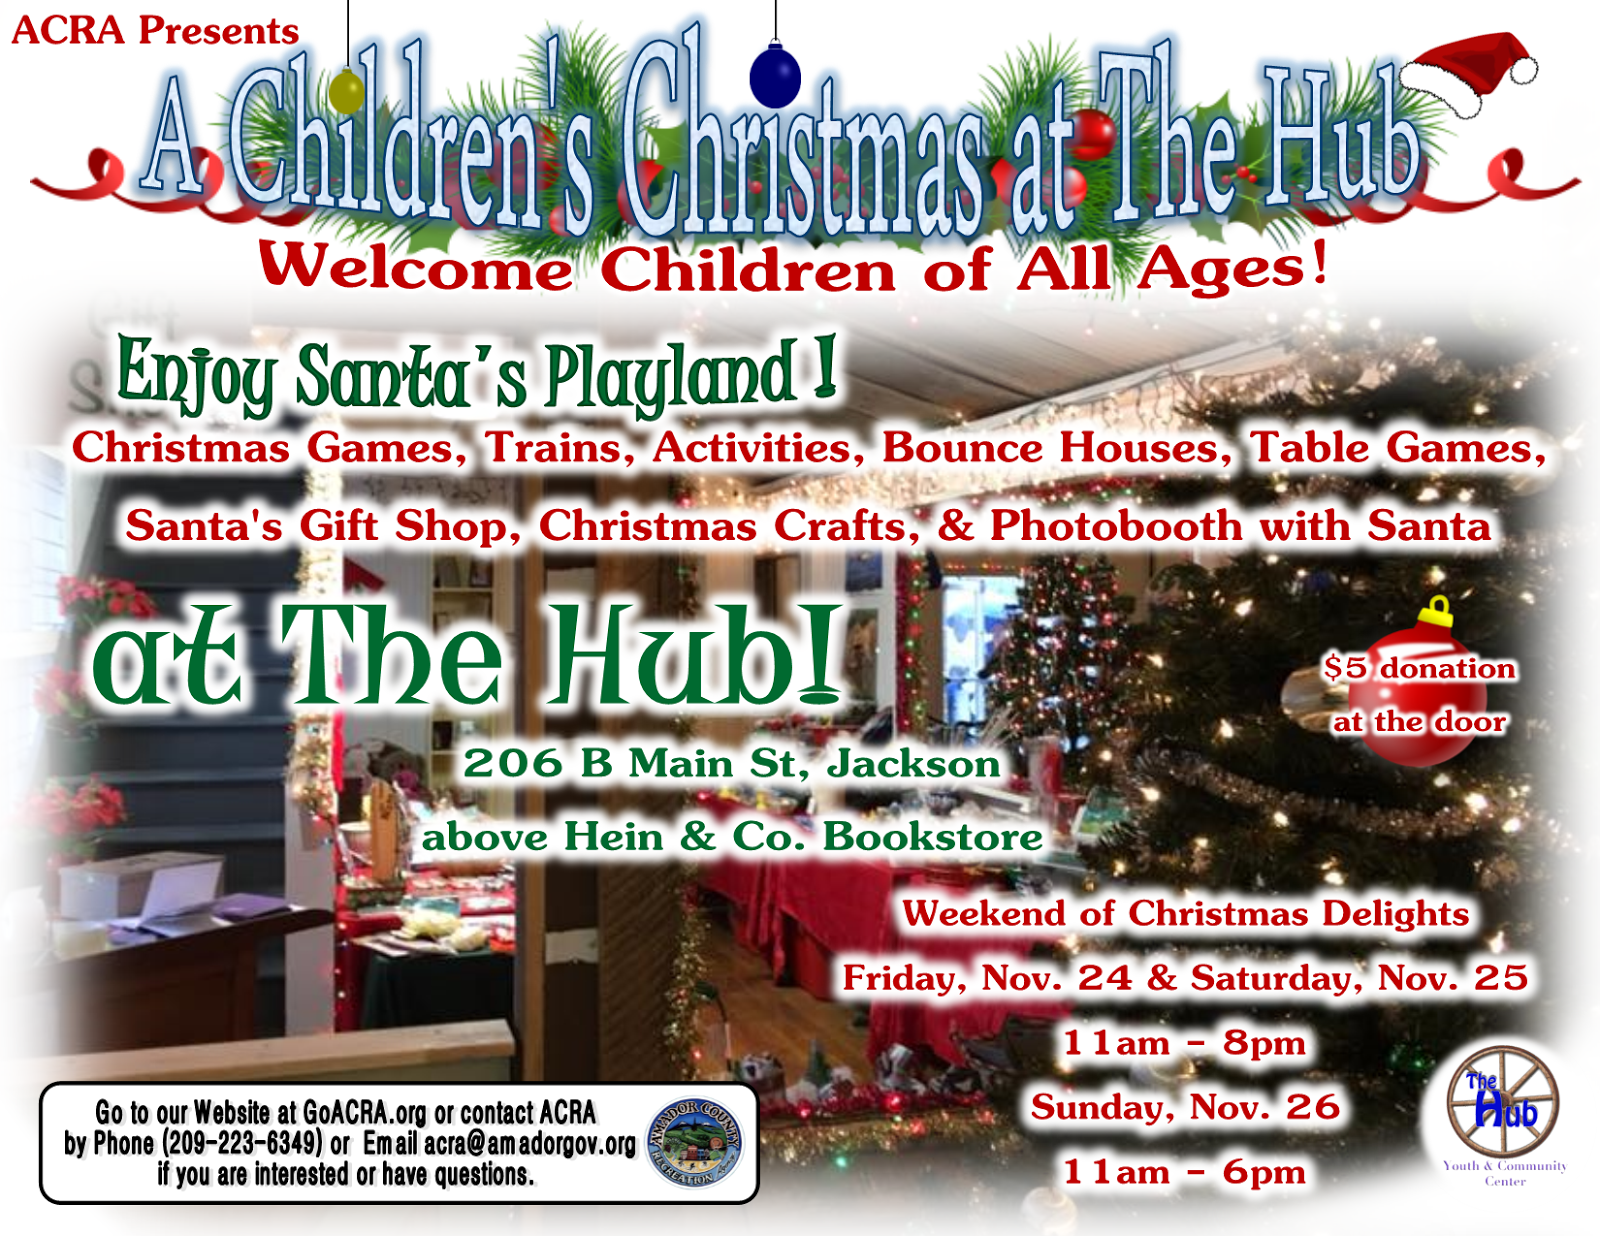 A Children's Christmas at The Hub